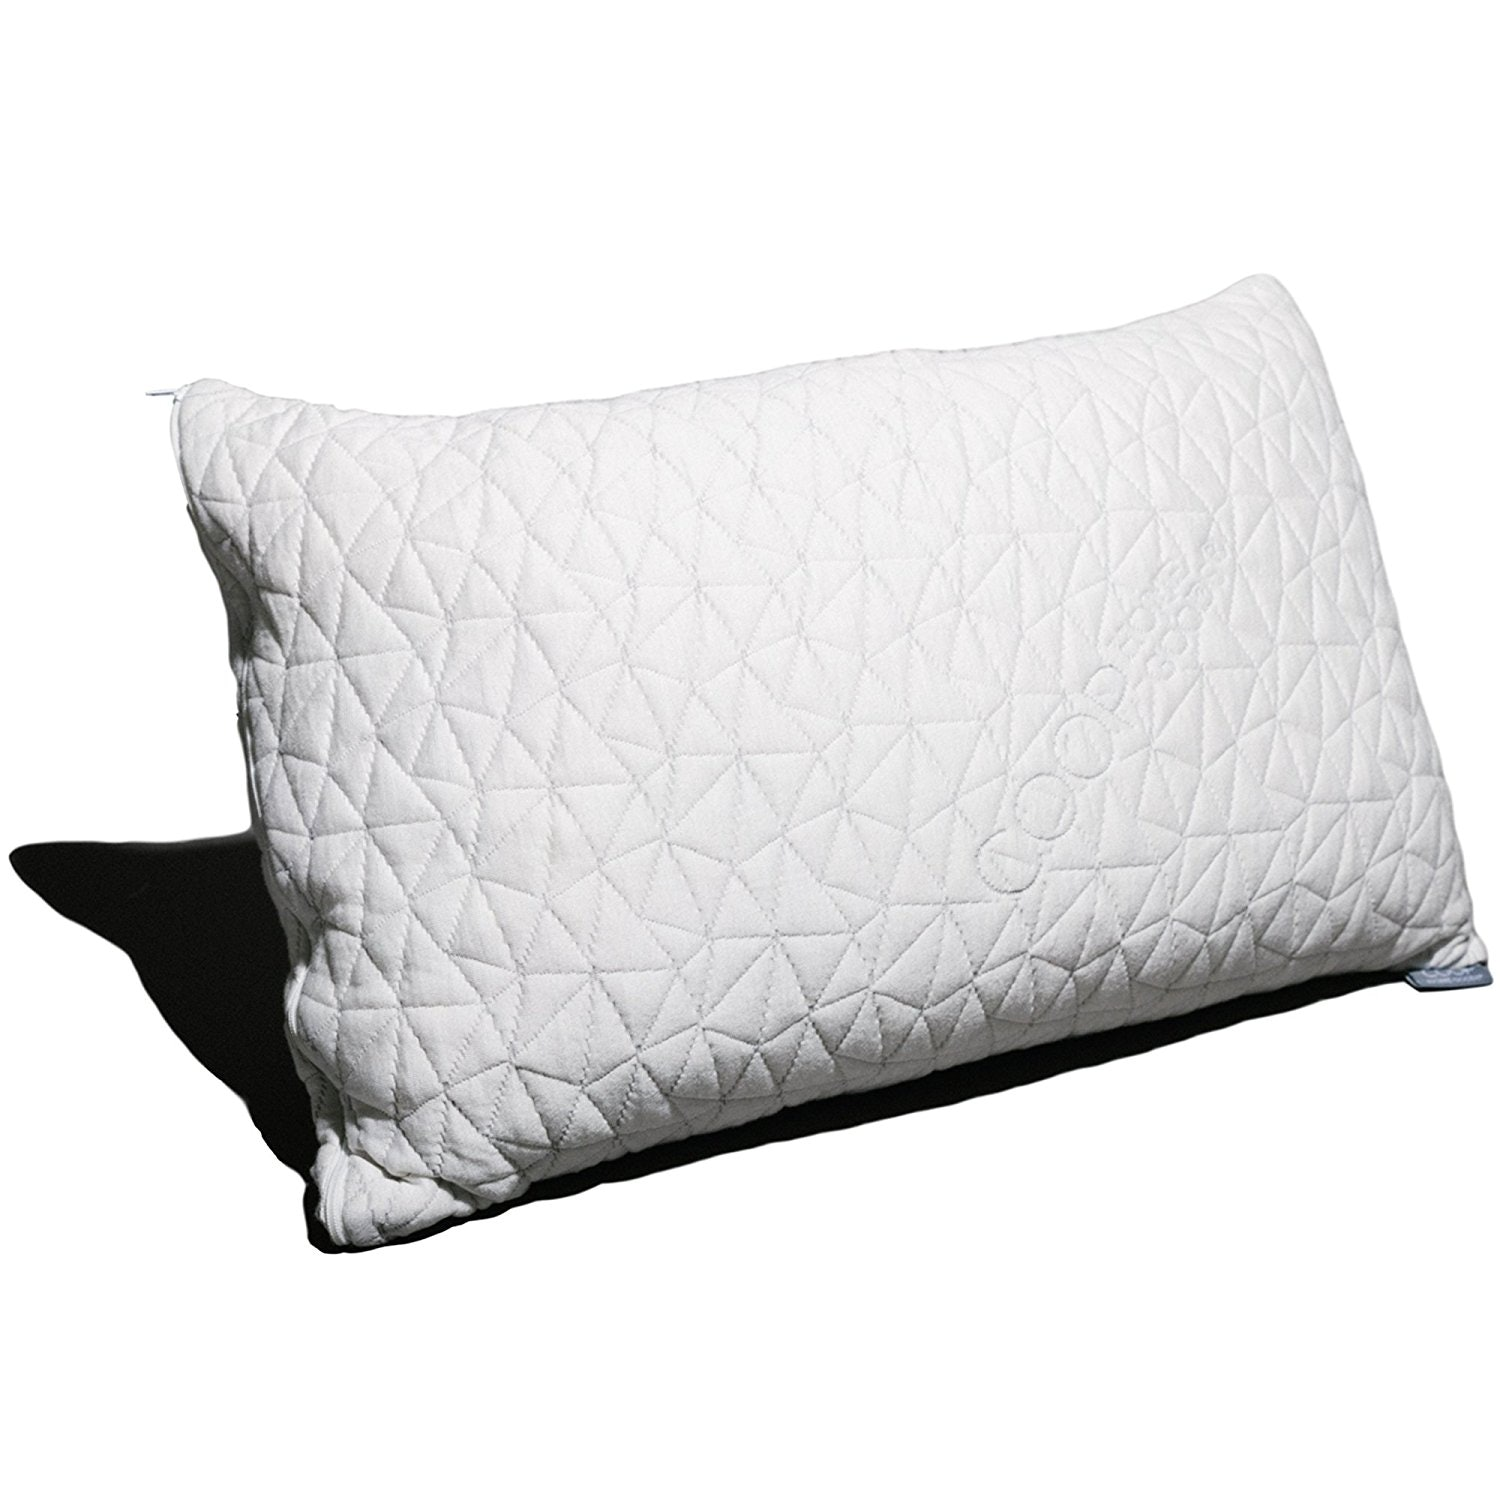 contour pain memory foam for pillows neck delightful classic pillow of